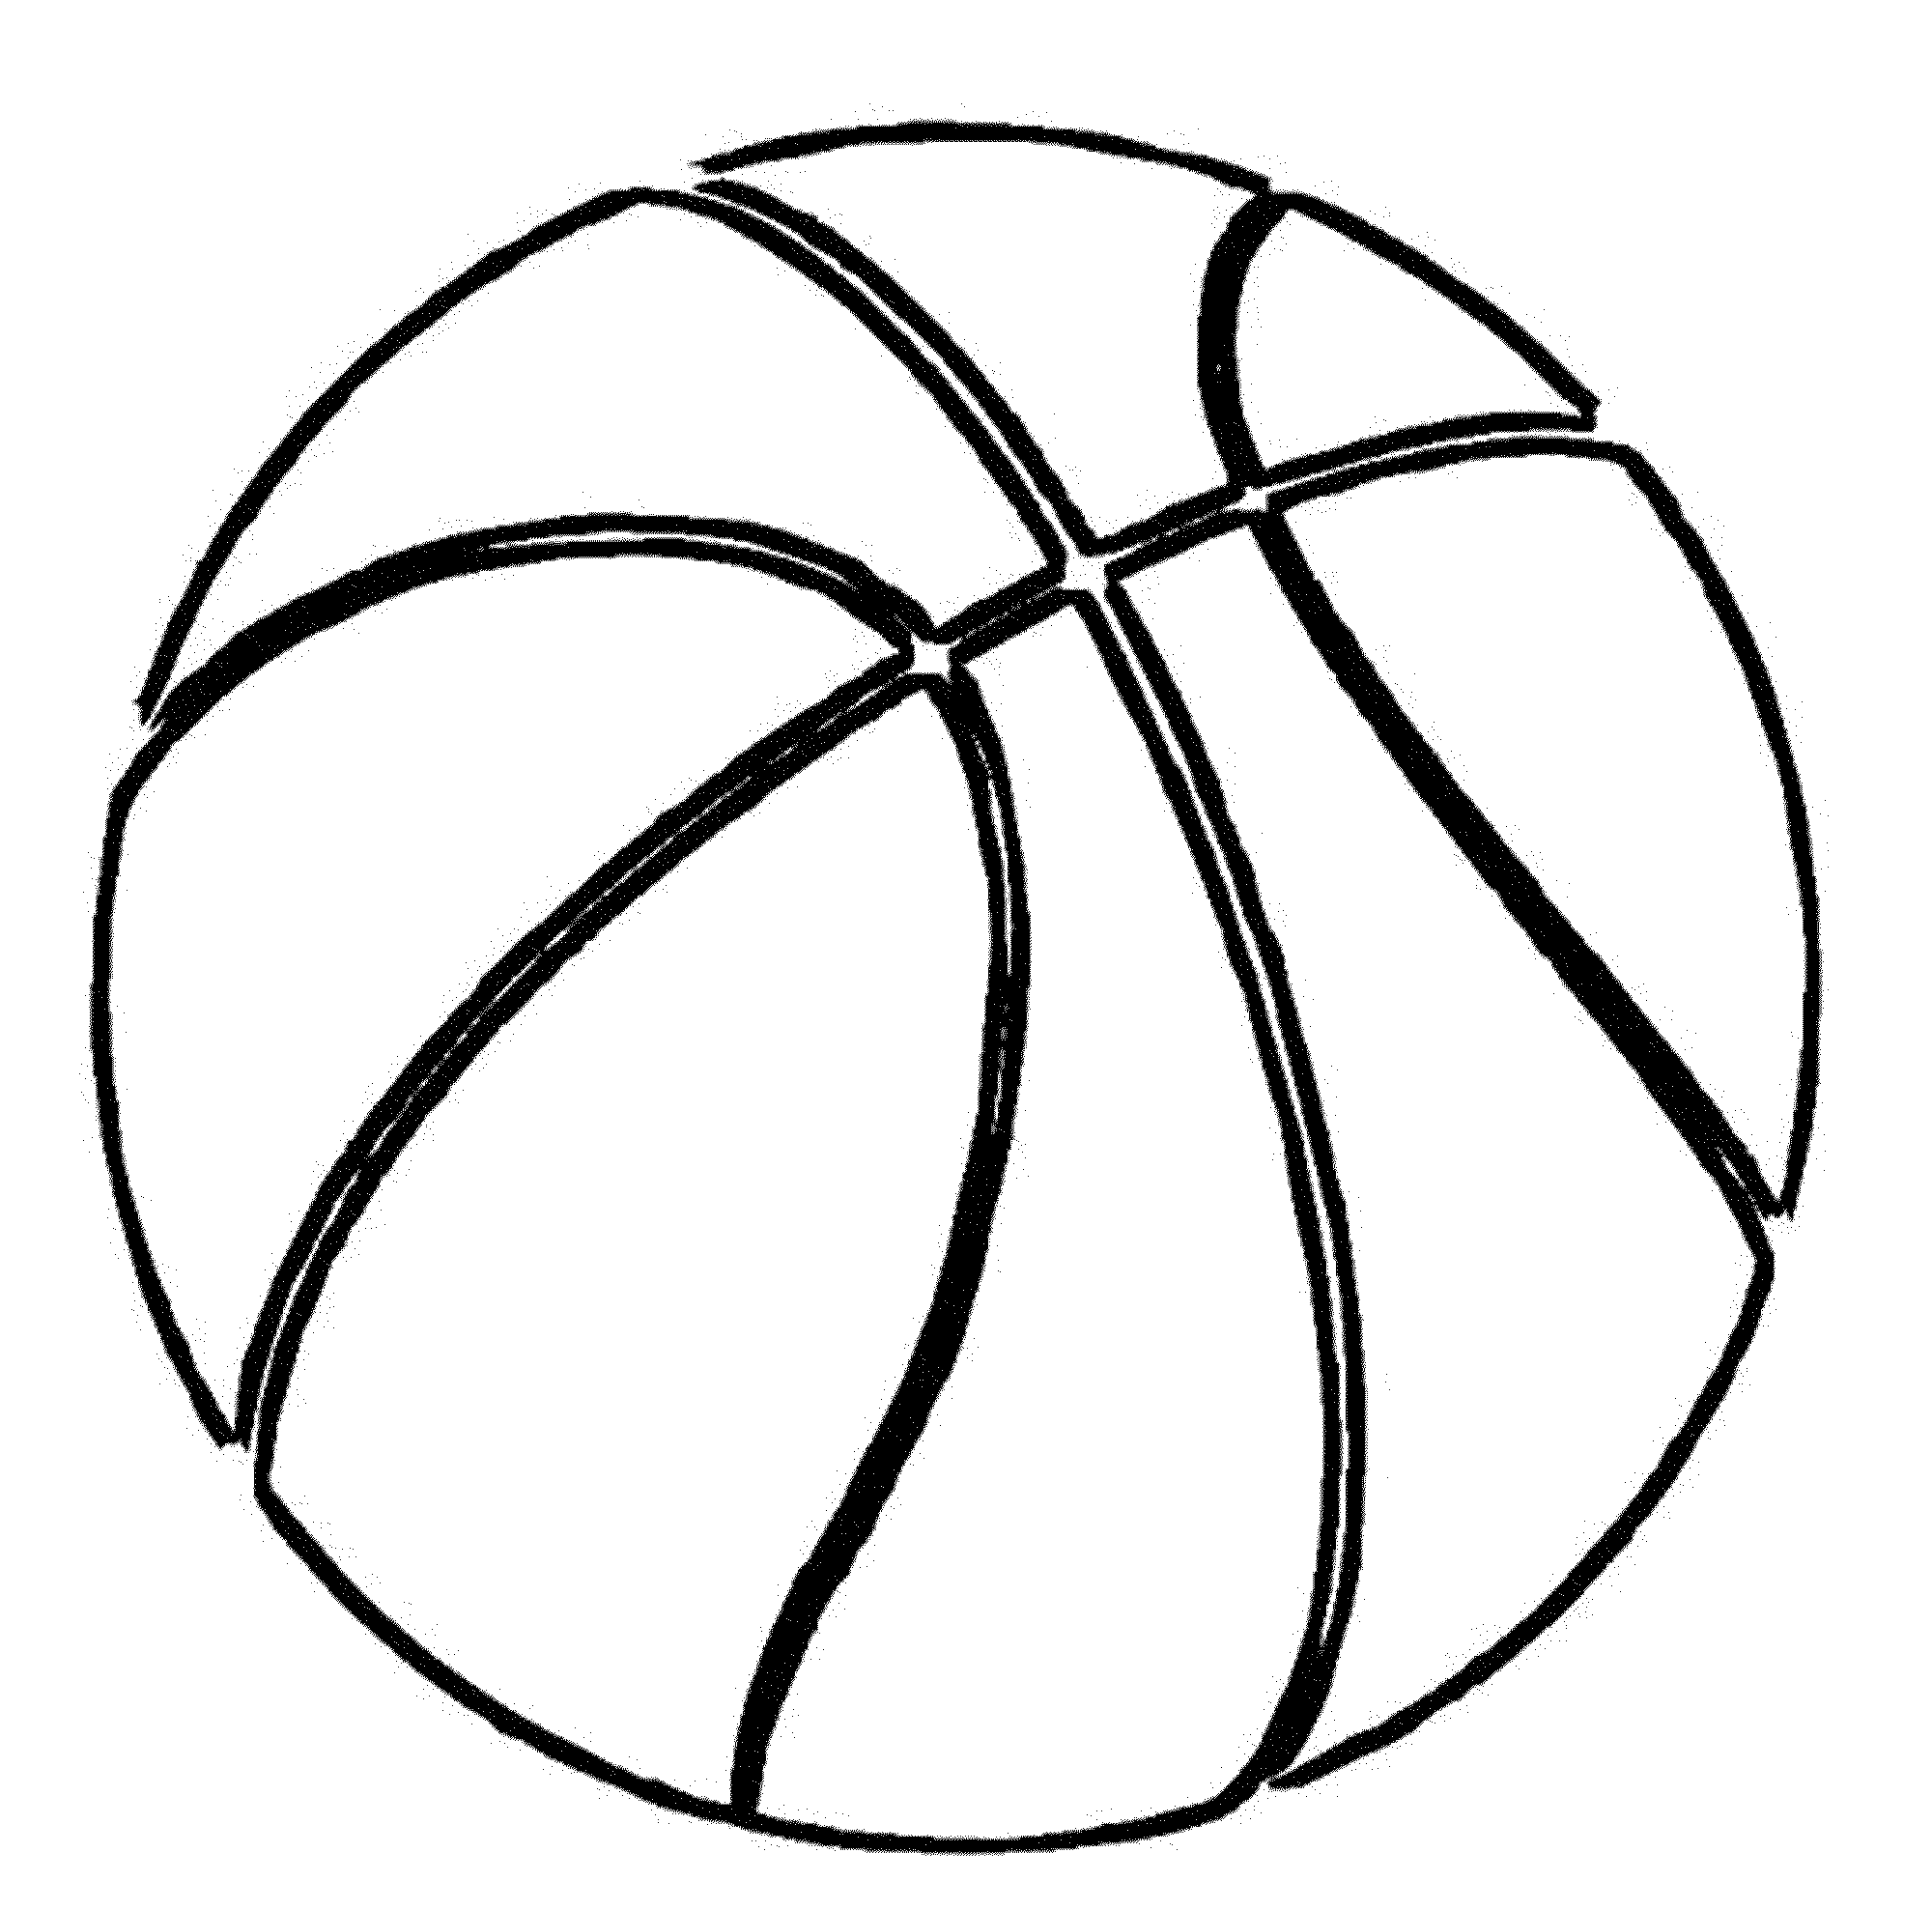 colouring picture of a ball ball coloring page twisty noodle of picture ball colouring a